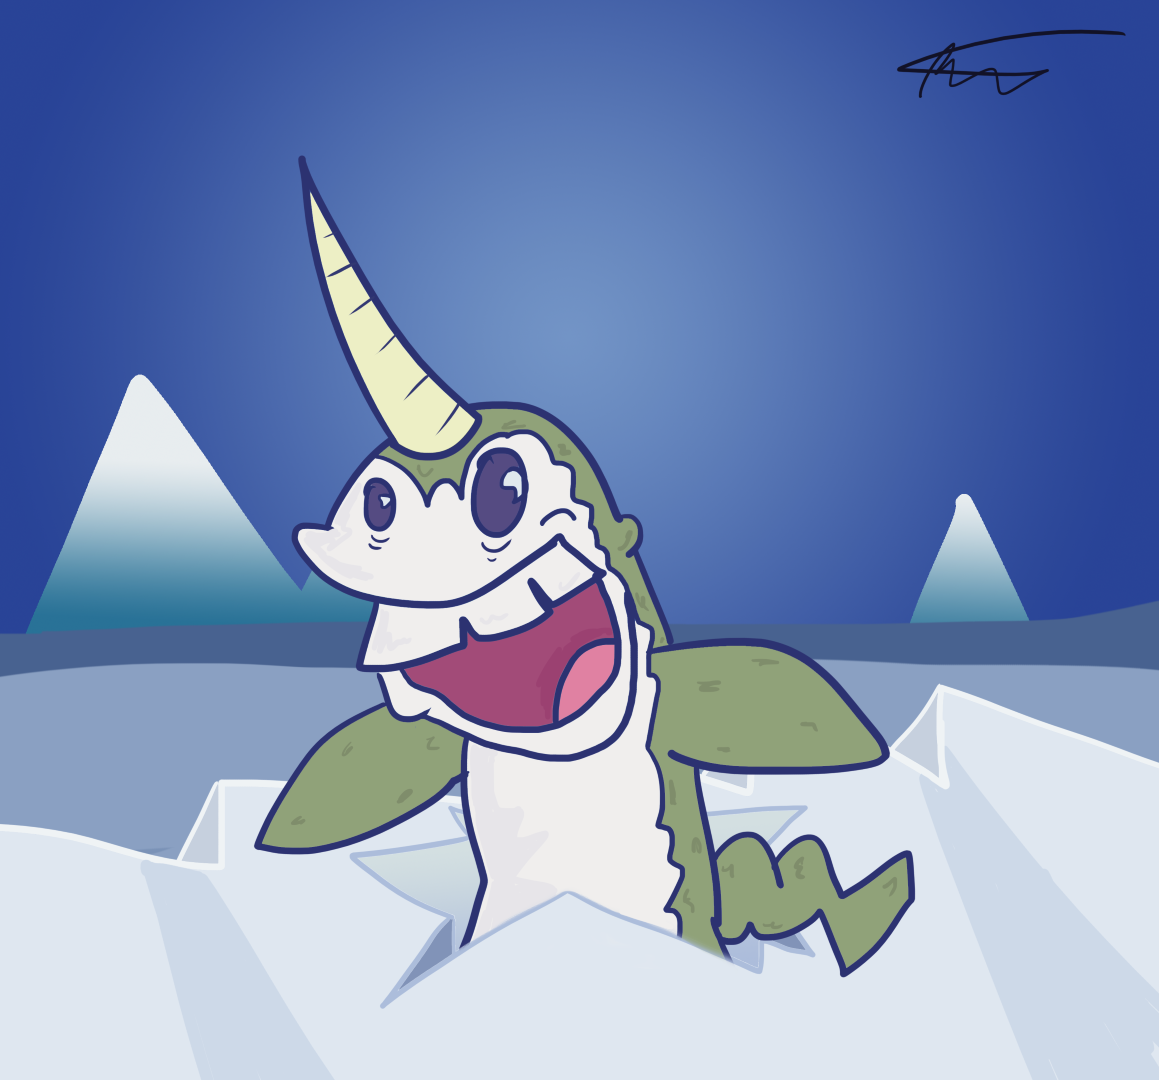 NARWHAL by PJ